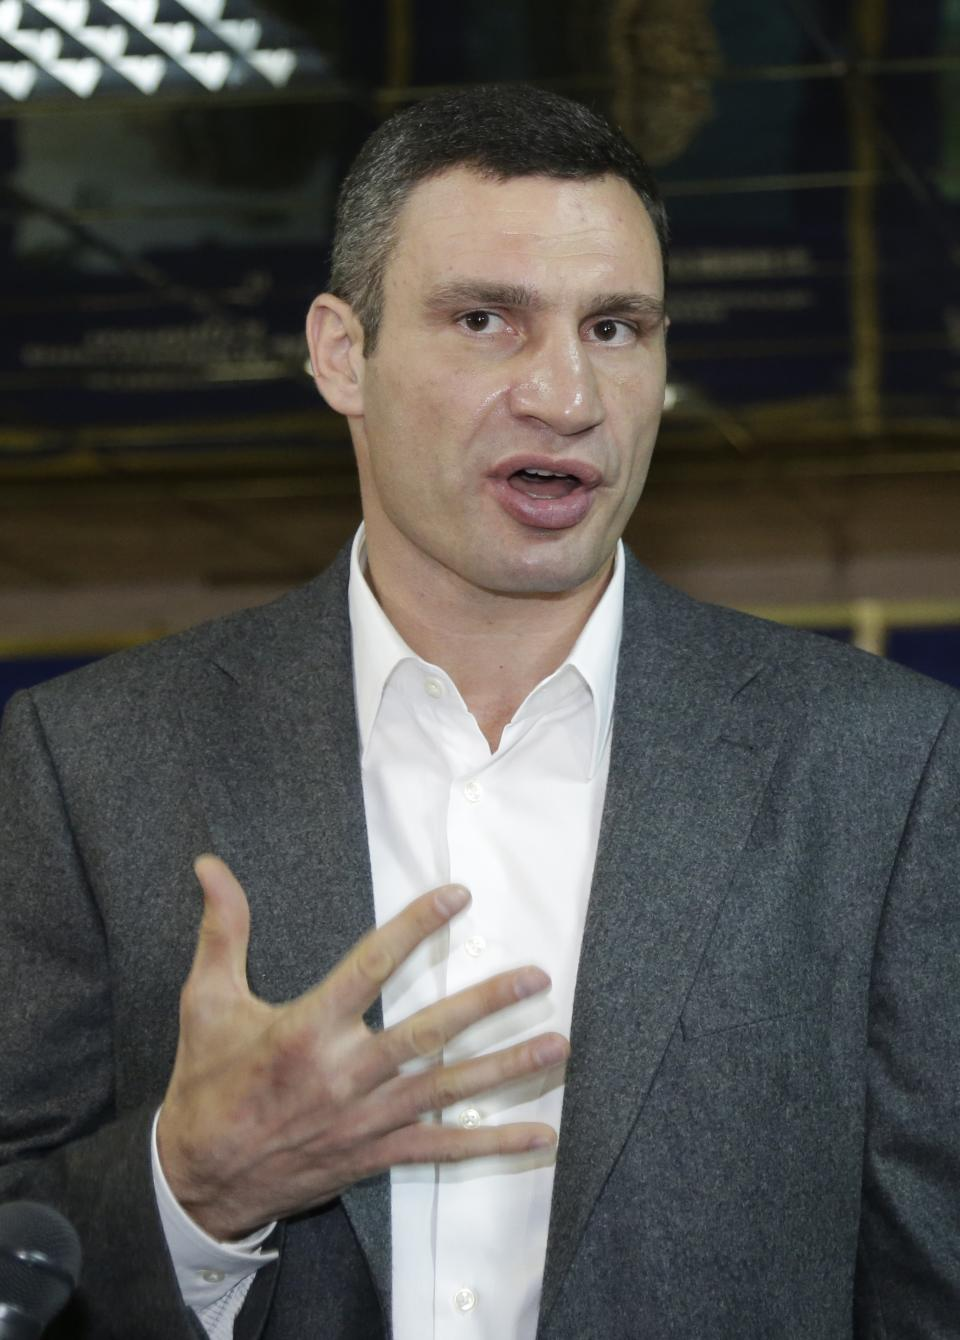 WBC Heavyweight Champion and Chairman of the Ukrainian democratic opposition Ukrainian Democratic Alliance for Reform Party Vitali Klitschko speaks to media after voting at a polling station during parliamentary elections in Kiev, Ukraine, Sunday, Oct. 28, 2012. (AP Photo/Efrem Lukatsky)